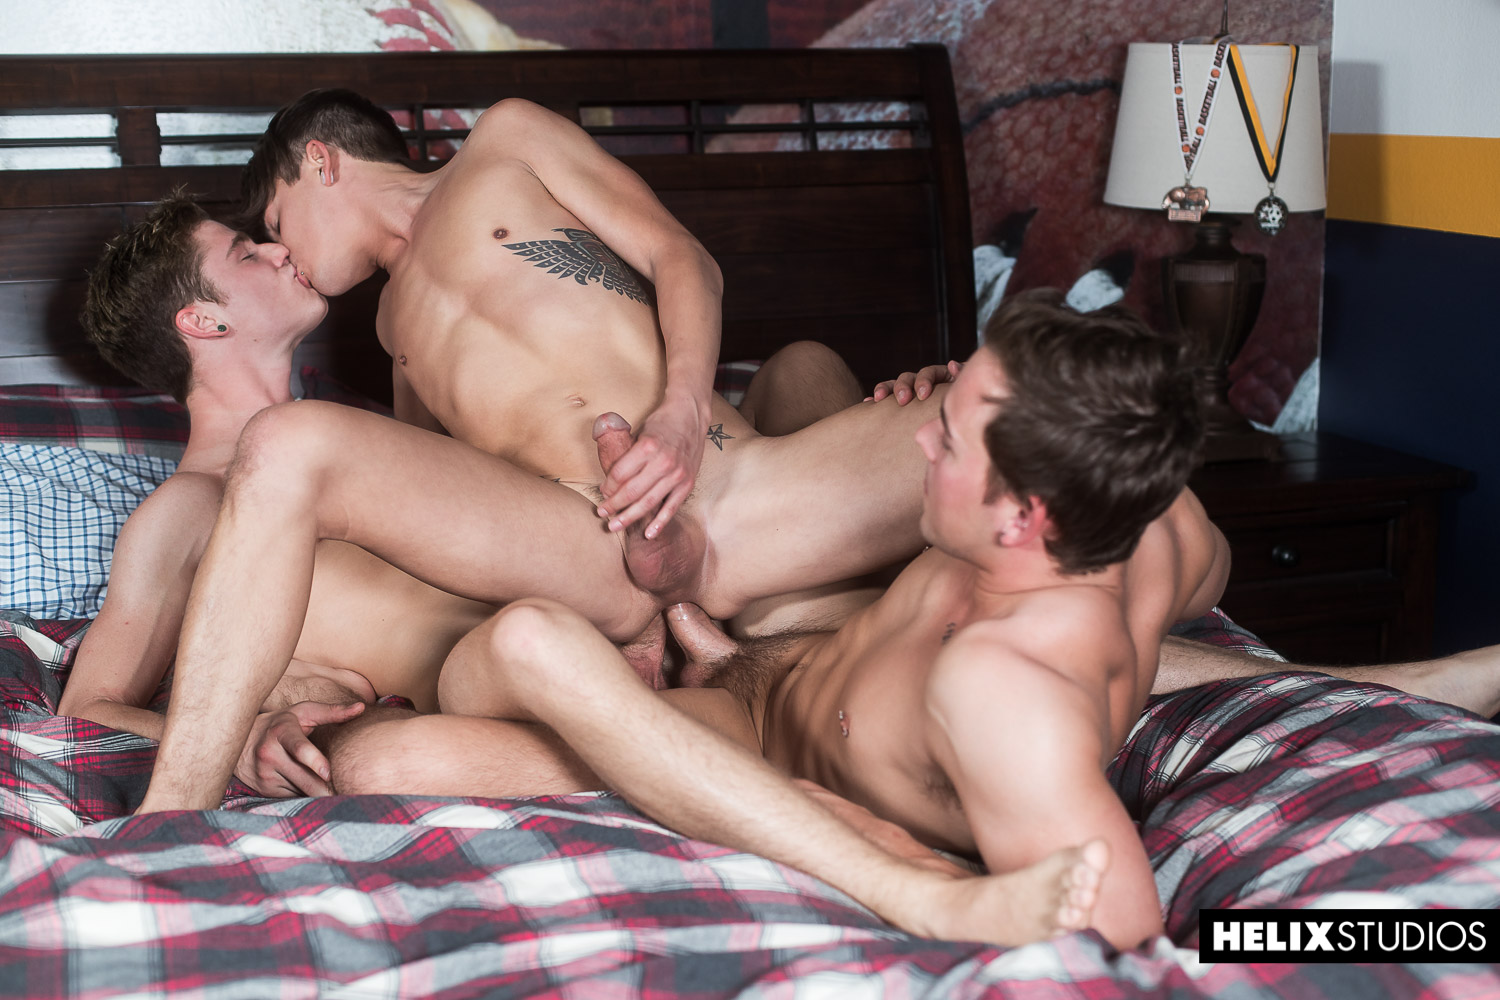 American gay boys having a threesome